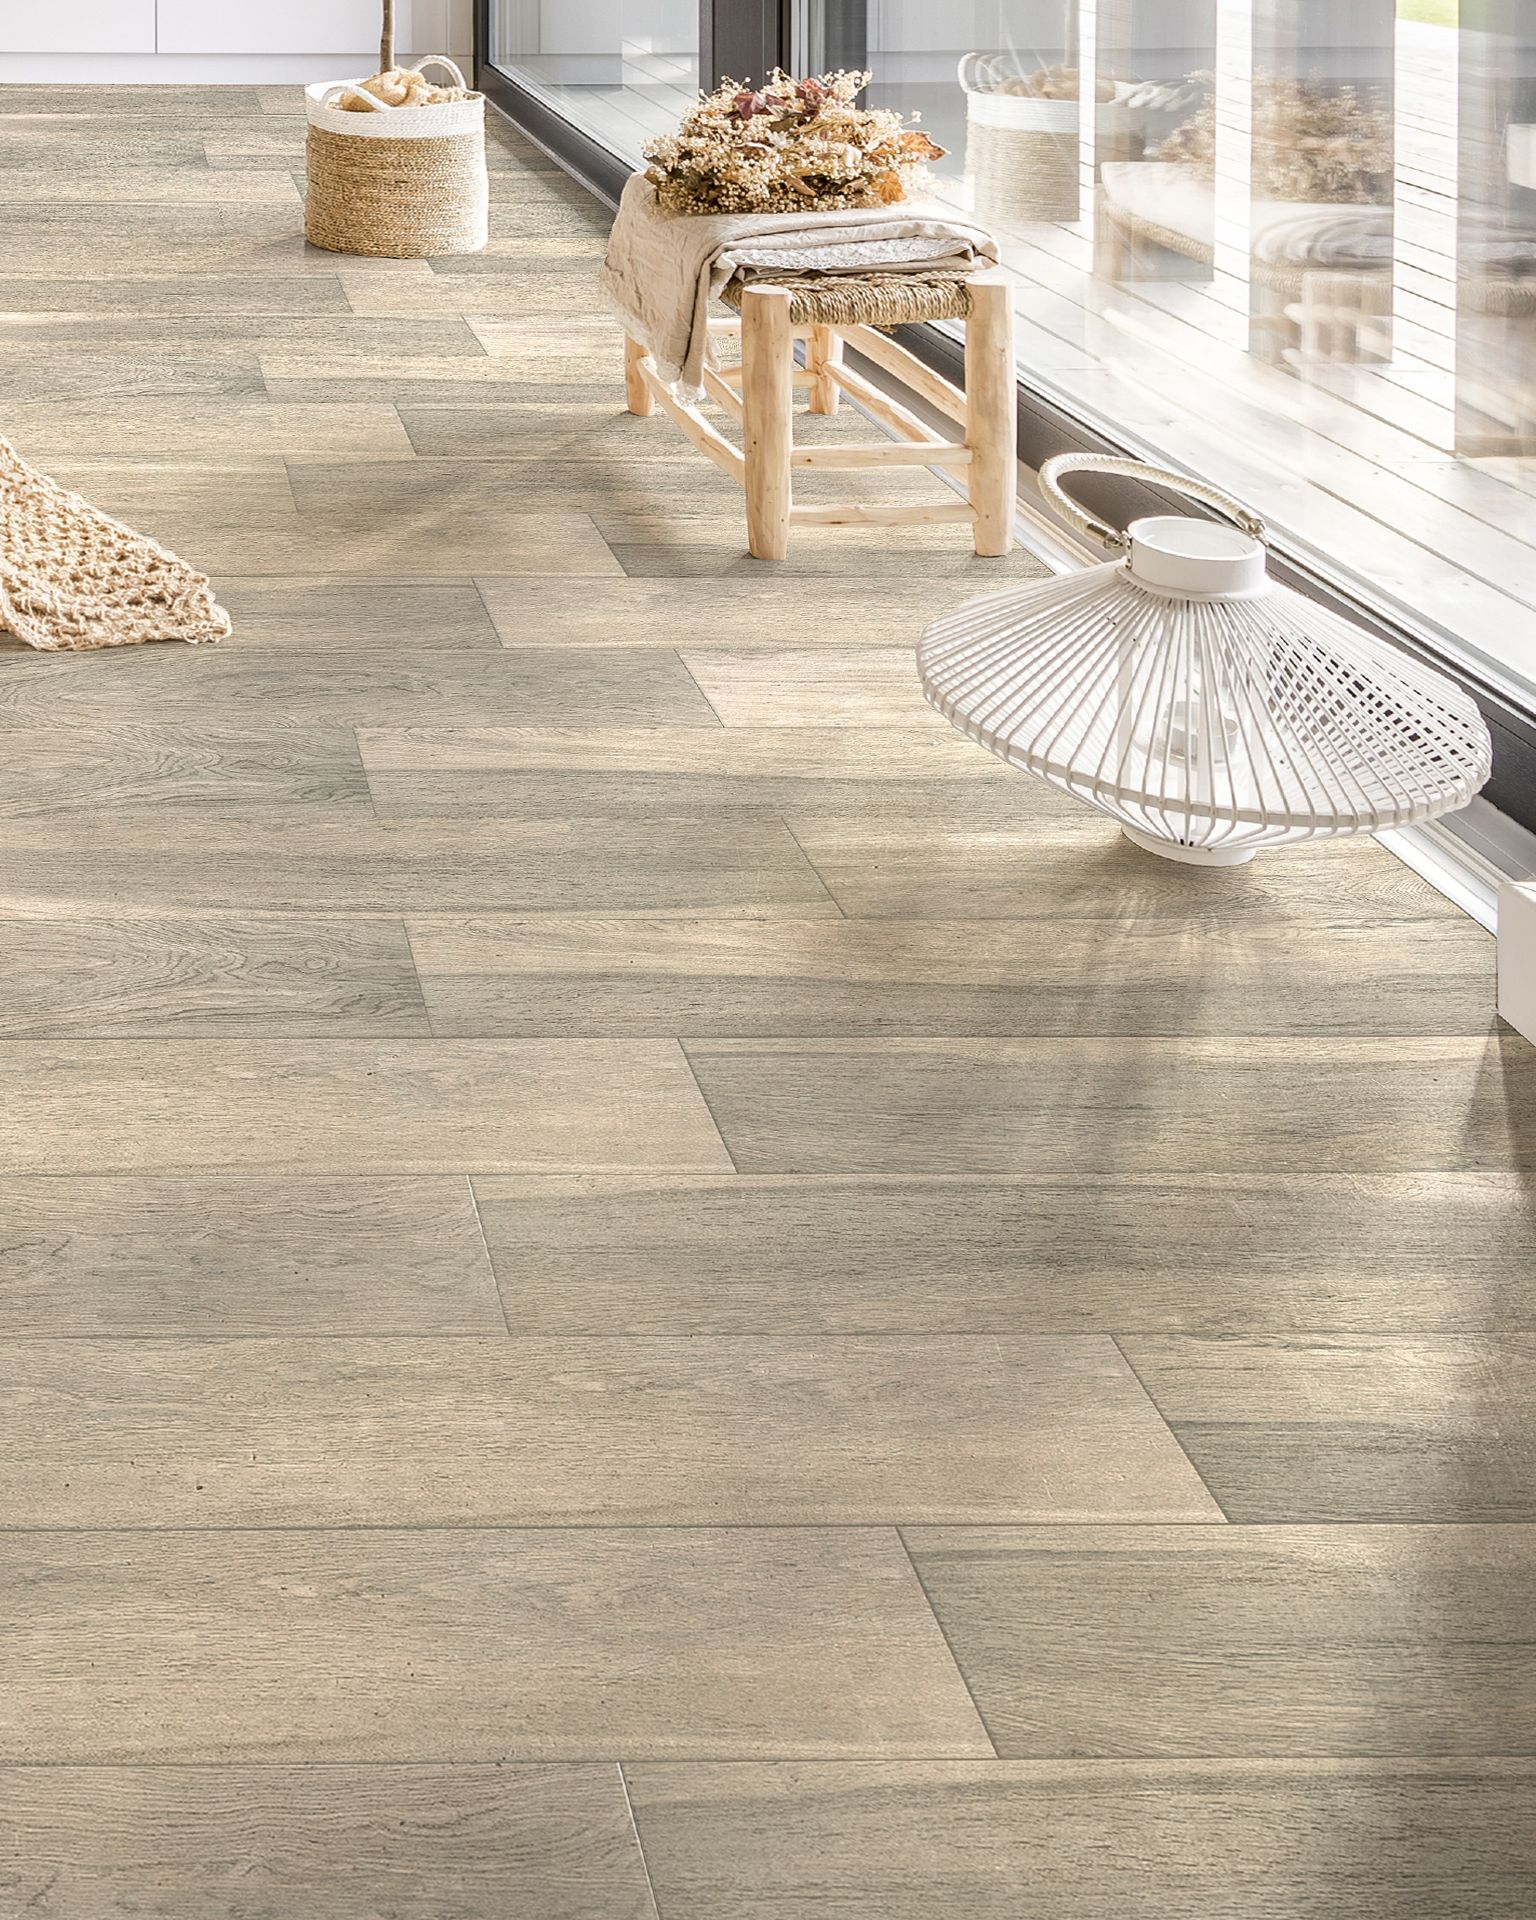 Guayacan Moka 8 x 48 Porcelain Wood Look Tile